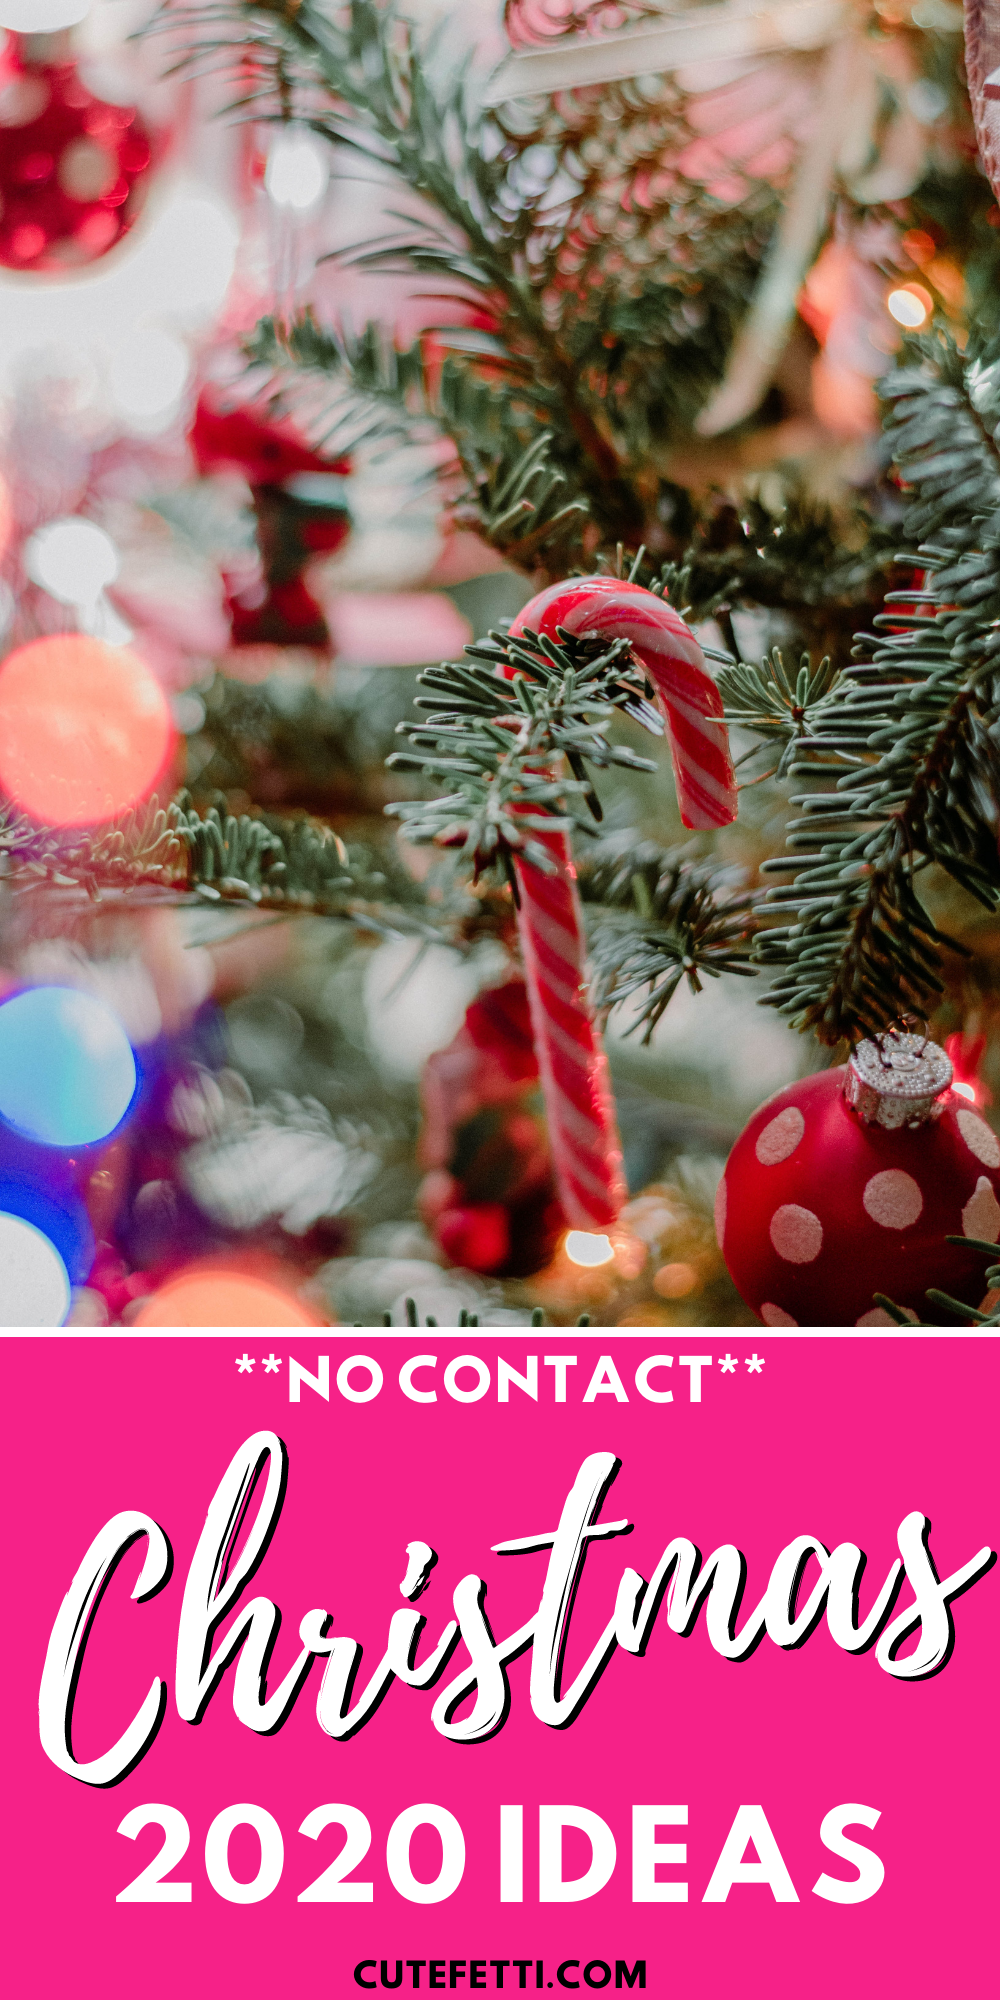 No Contact Christmas Ideas In 2020 Christmas Christmas Events Holiday Fun